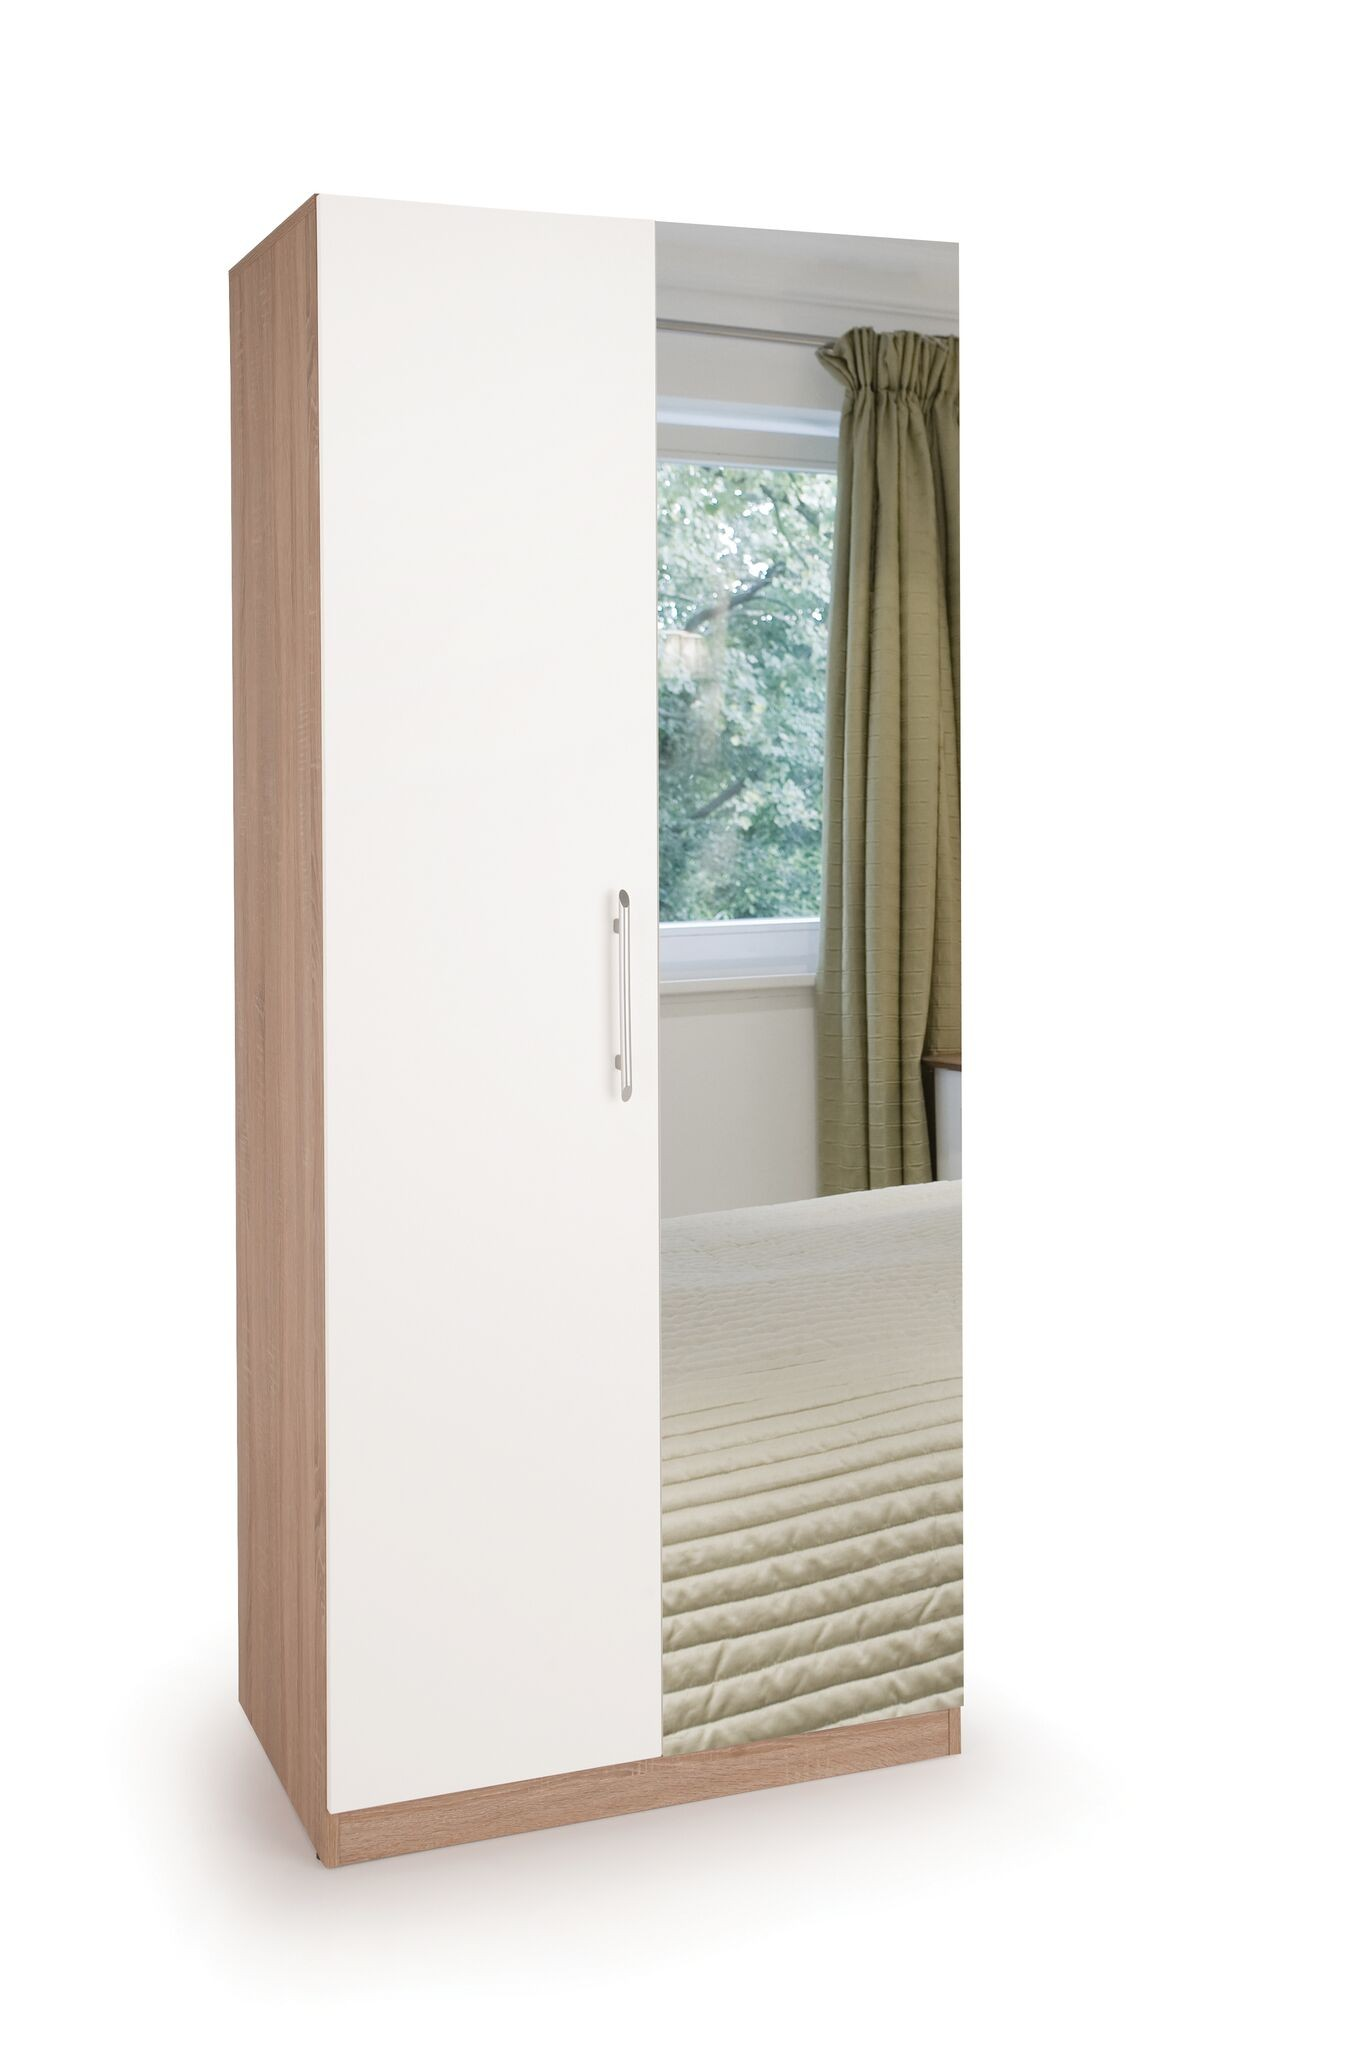 Connect Hyde 2 Door Wardrobe with Mirror